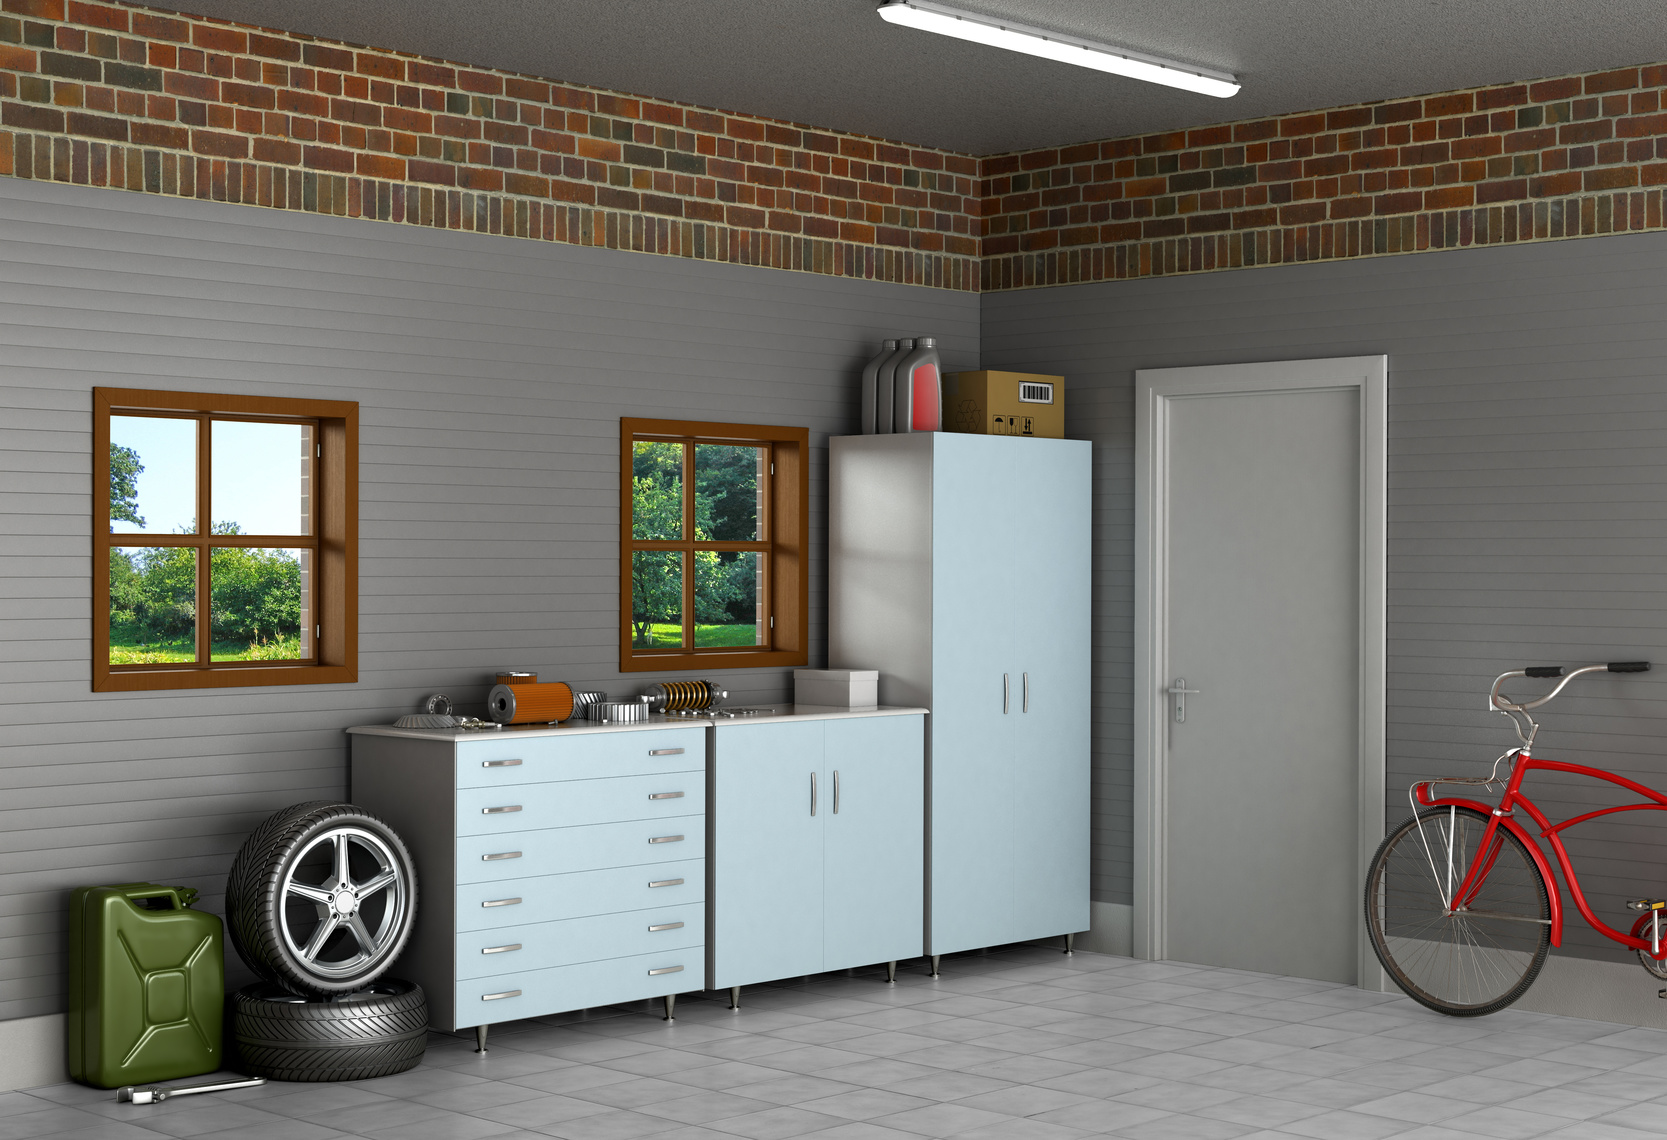 Comment Bien Ranger Son Garage Comment Amnager Son Garage Best Atelier With Comment Amnager Son